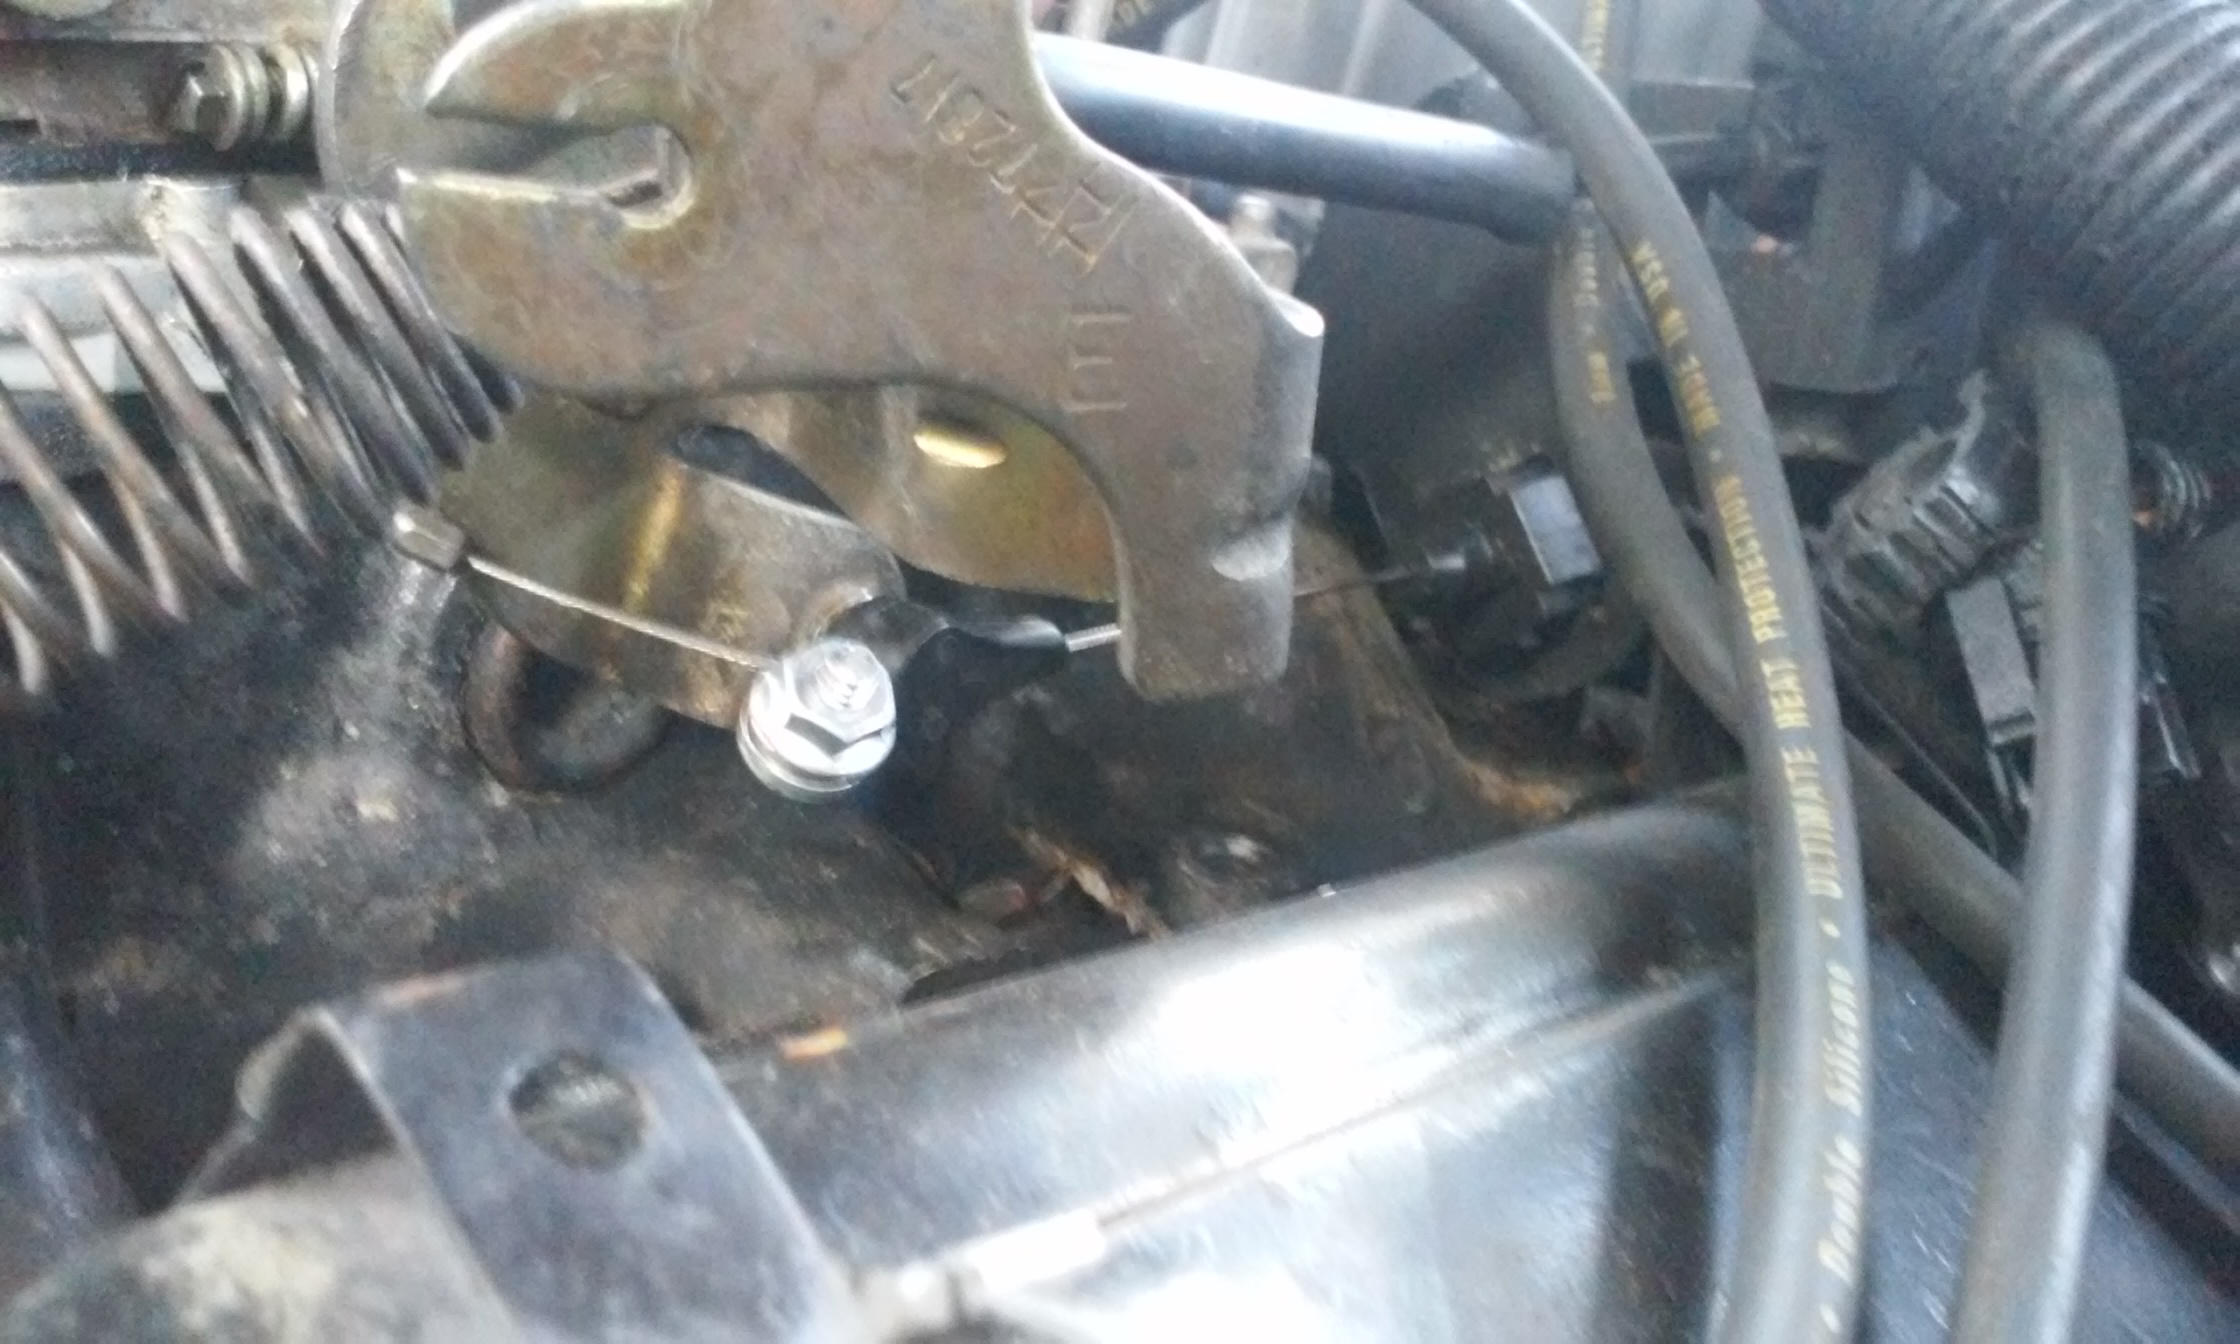 will this work - GBodyForum - '78-'88 General Motors A/G-Body Community